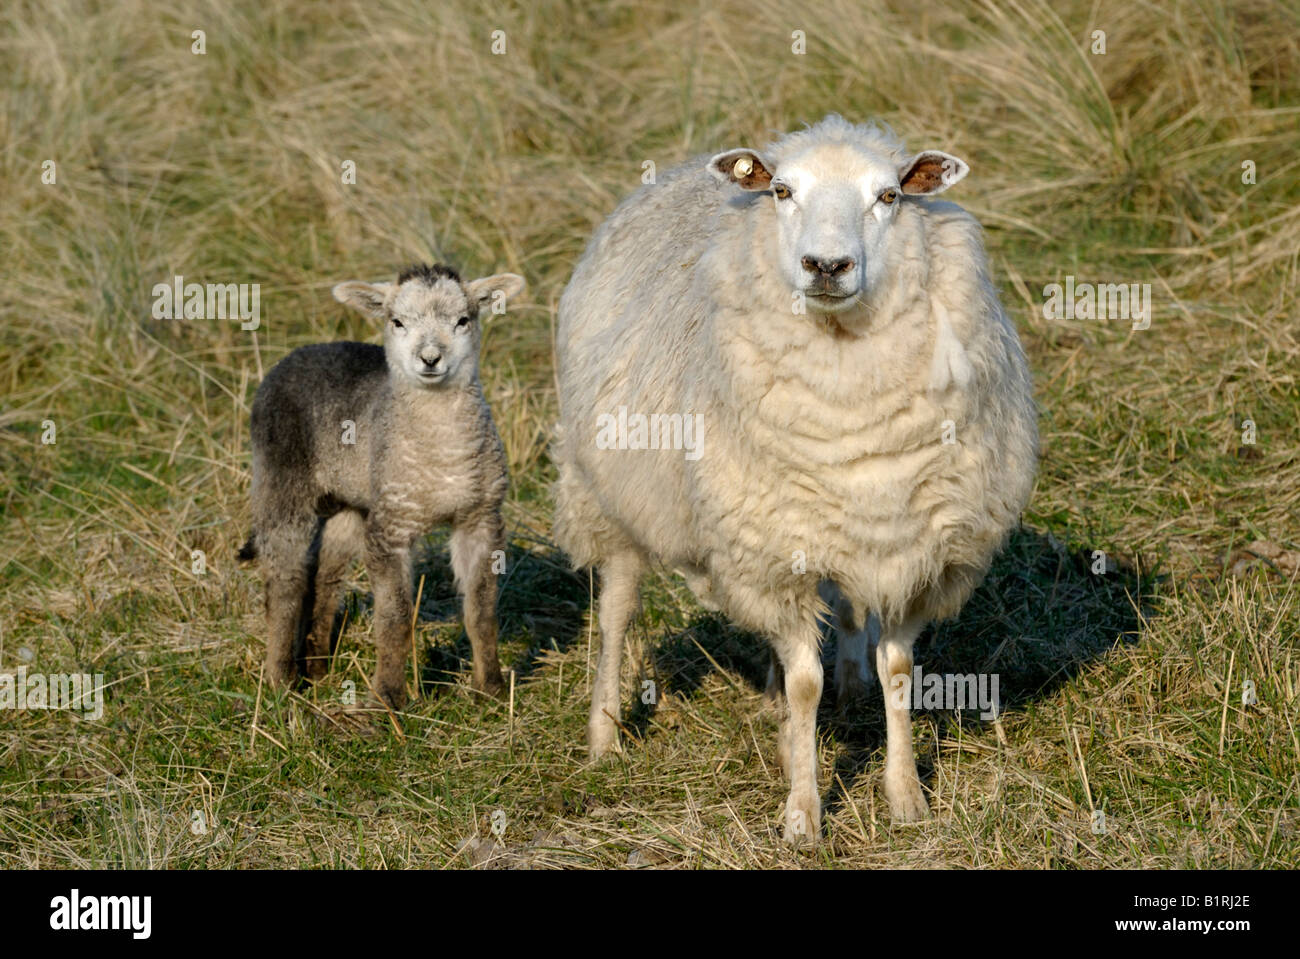 Two domestic sheep (Ovis orientalis aries), ewe with lamb - Stock Image